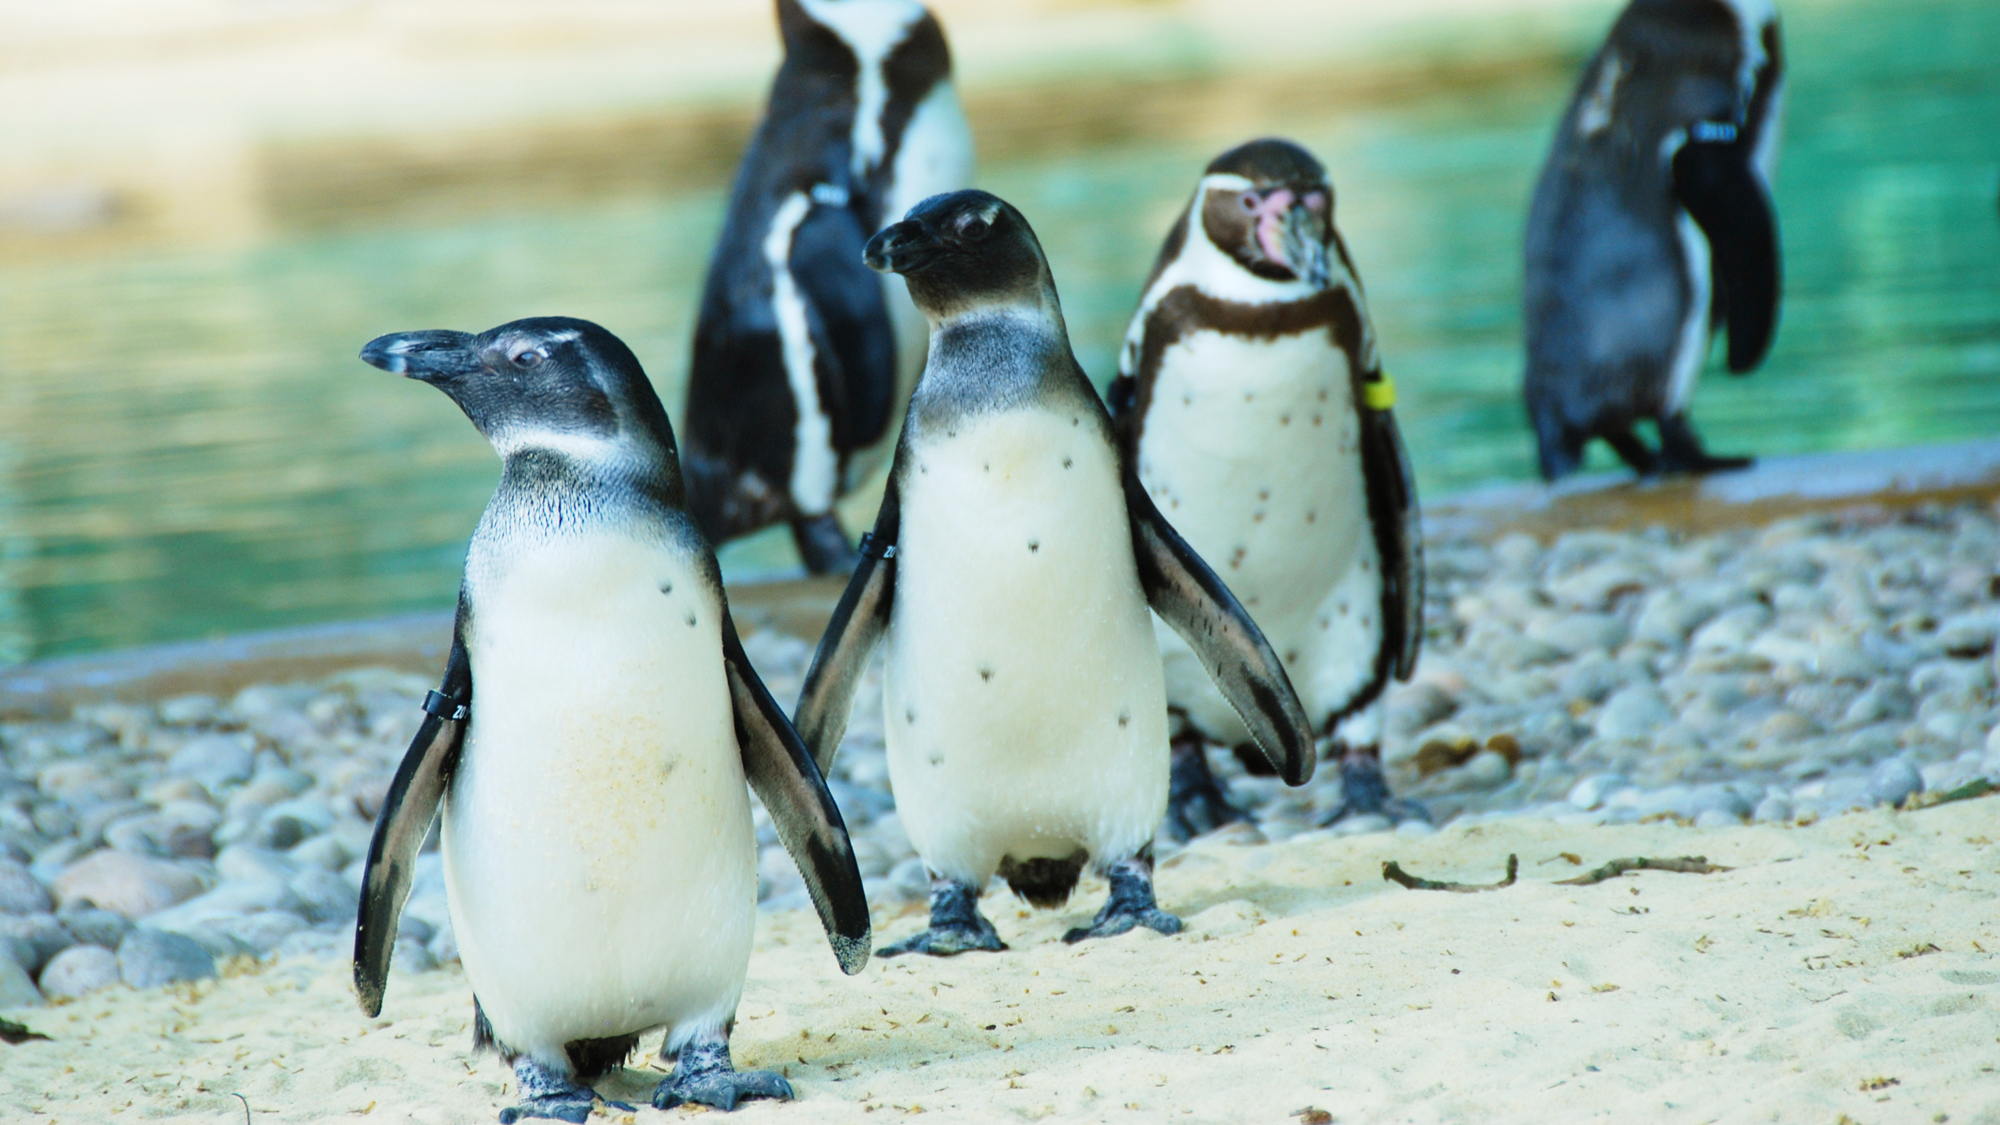 General Information For Group Visits Zoological Society Of - Children's birthday party london zoo